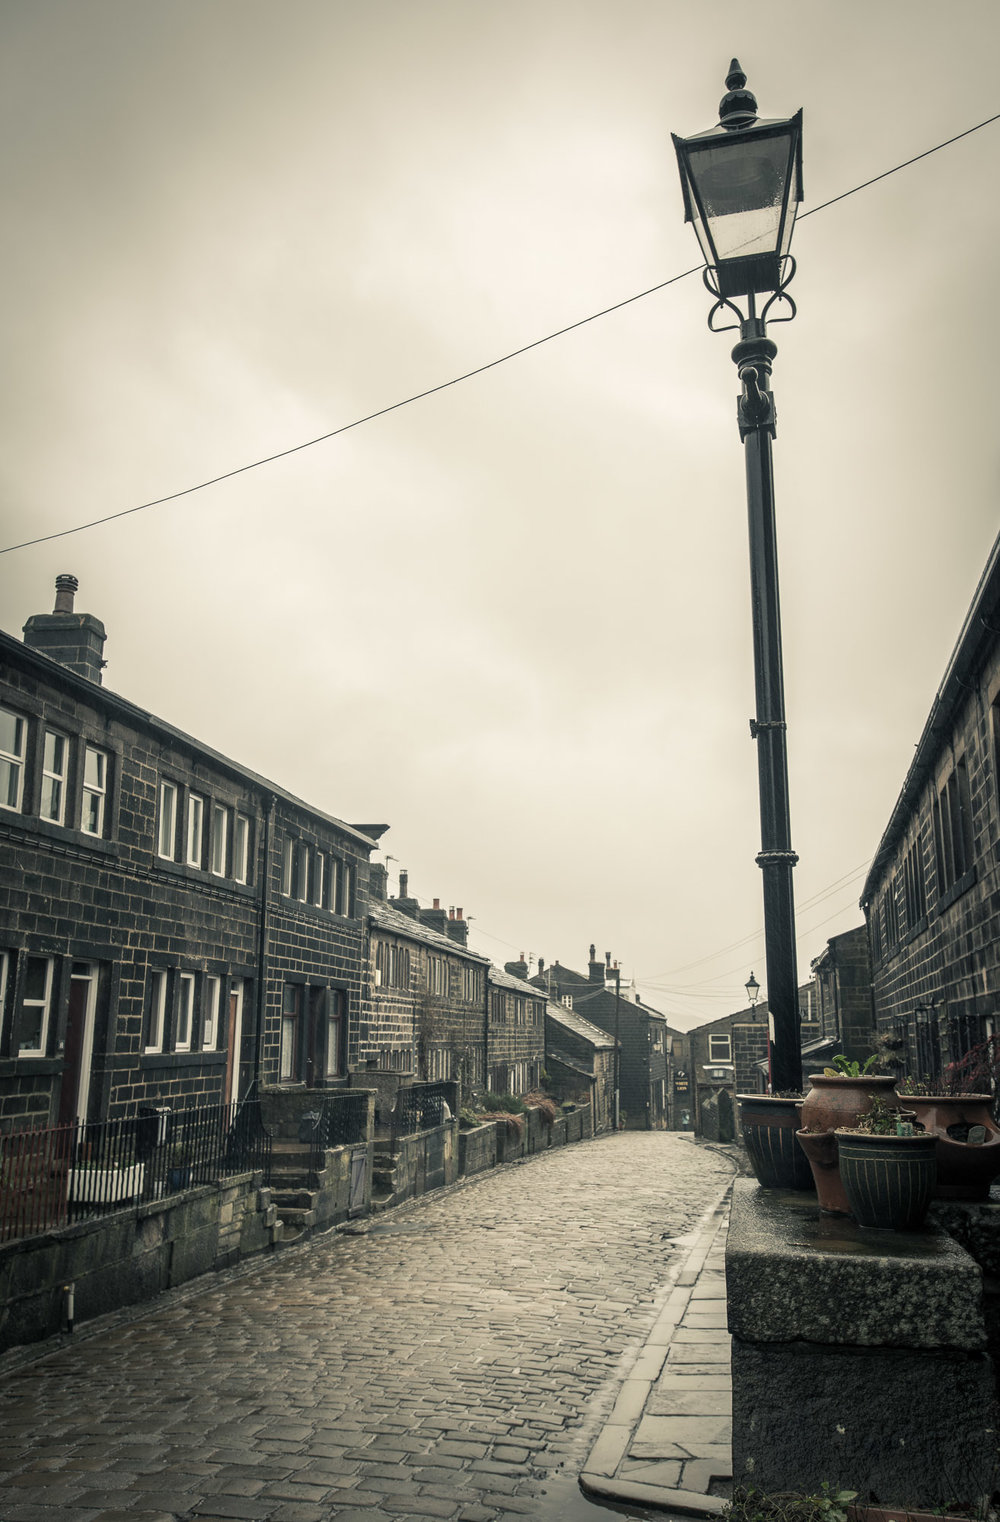 Traditional cobbled Yorkshire street